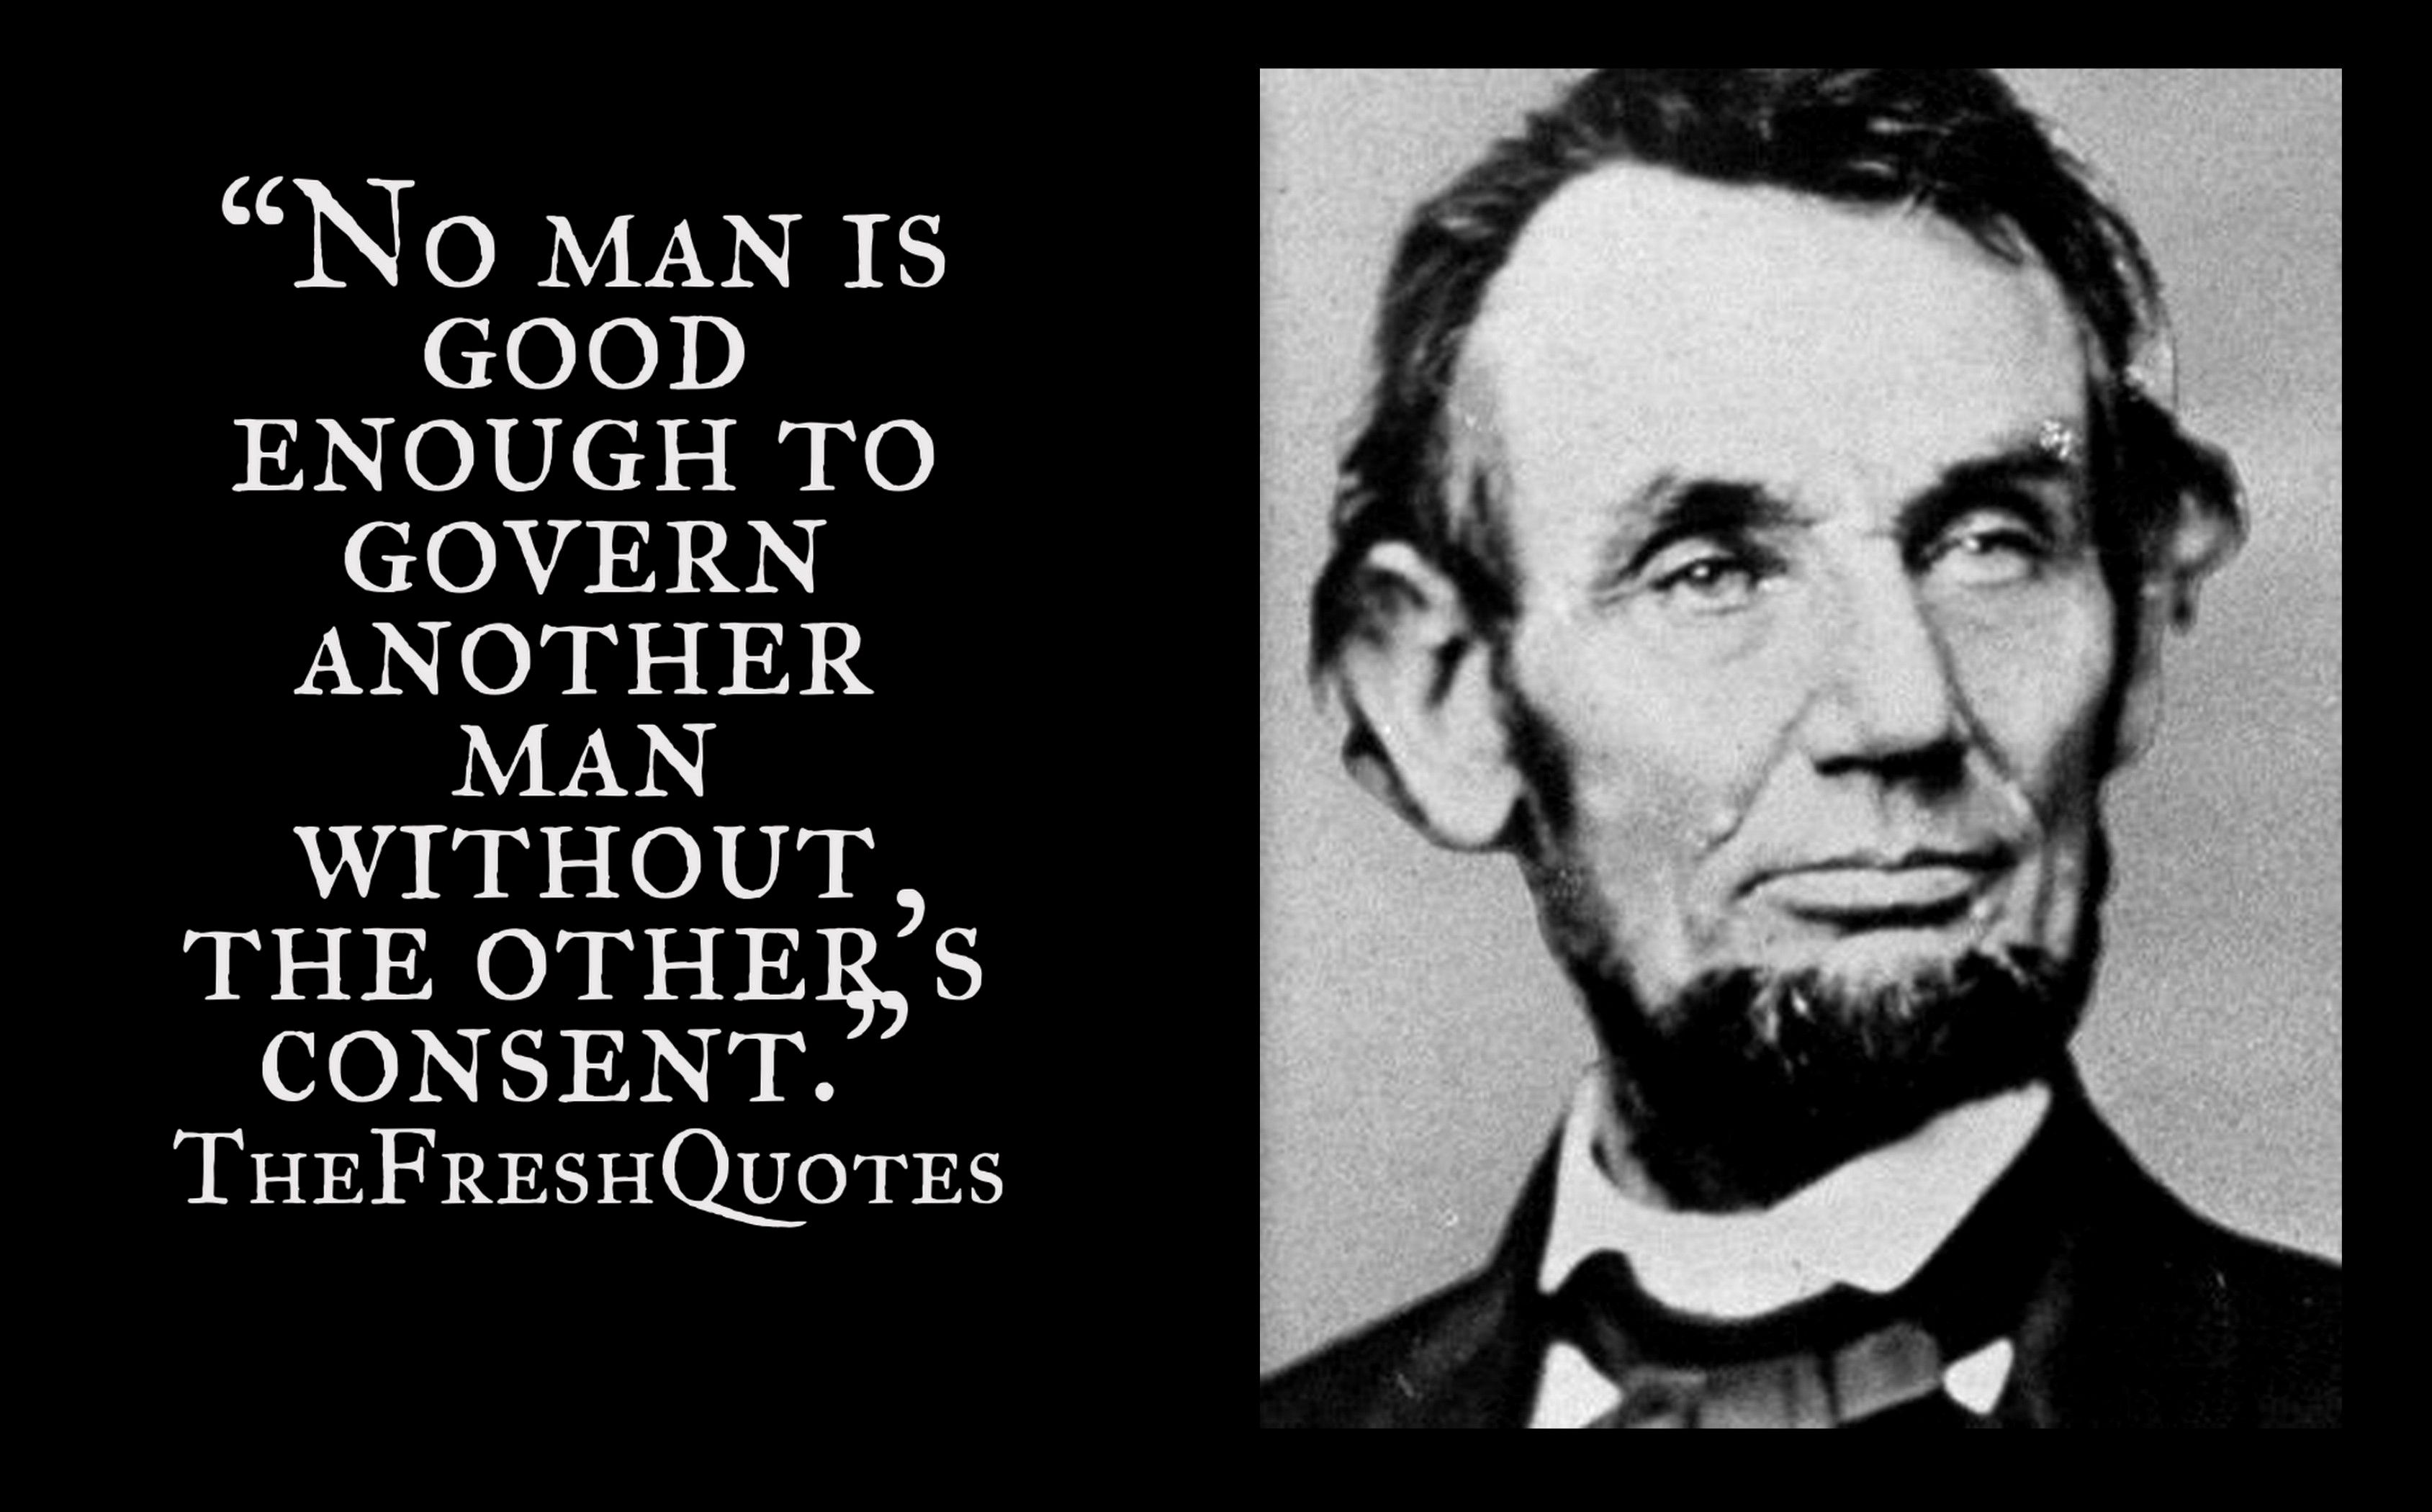 36 Top Inspiring Abraham Lincoln Quotes Quotes And Sayings Abraham Lincoln Quotes Politician Quote Image Quotes